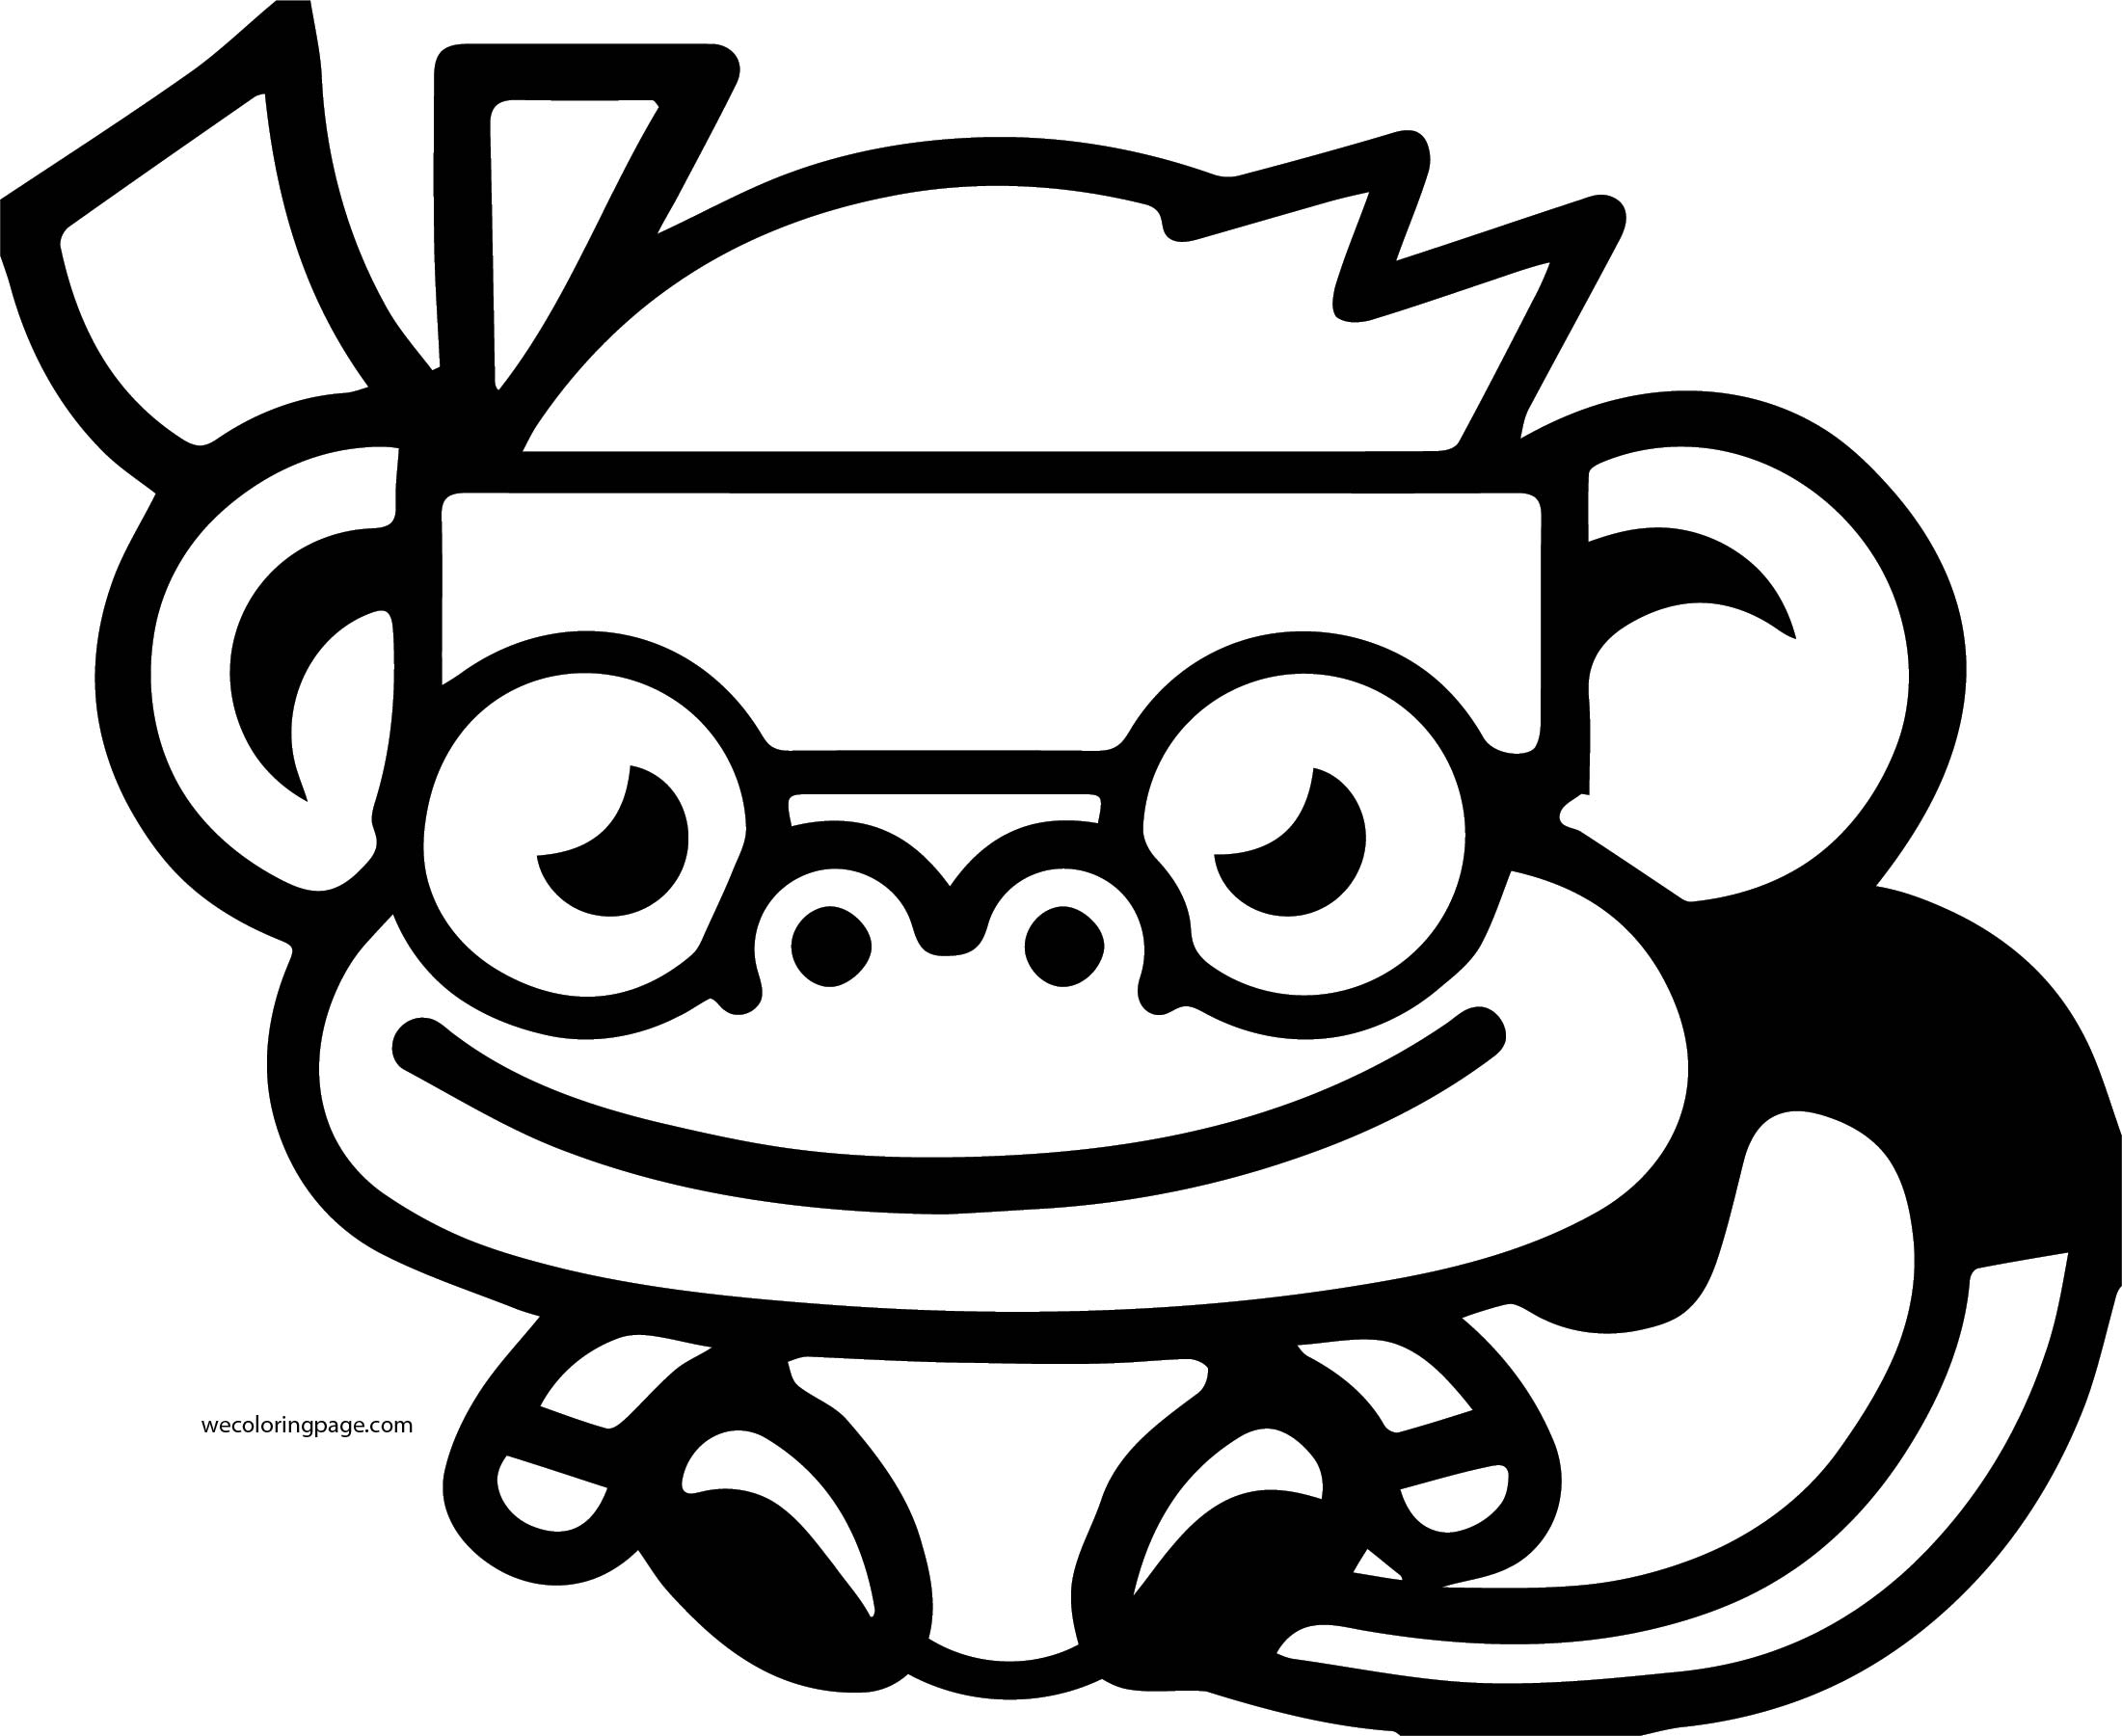 Moshi Monsters Cute Monkey Coloring Page | Wecoloringpage.com